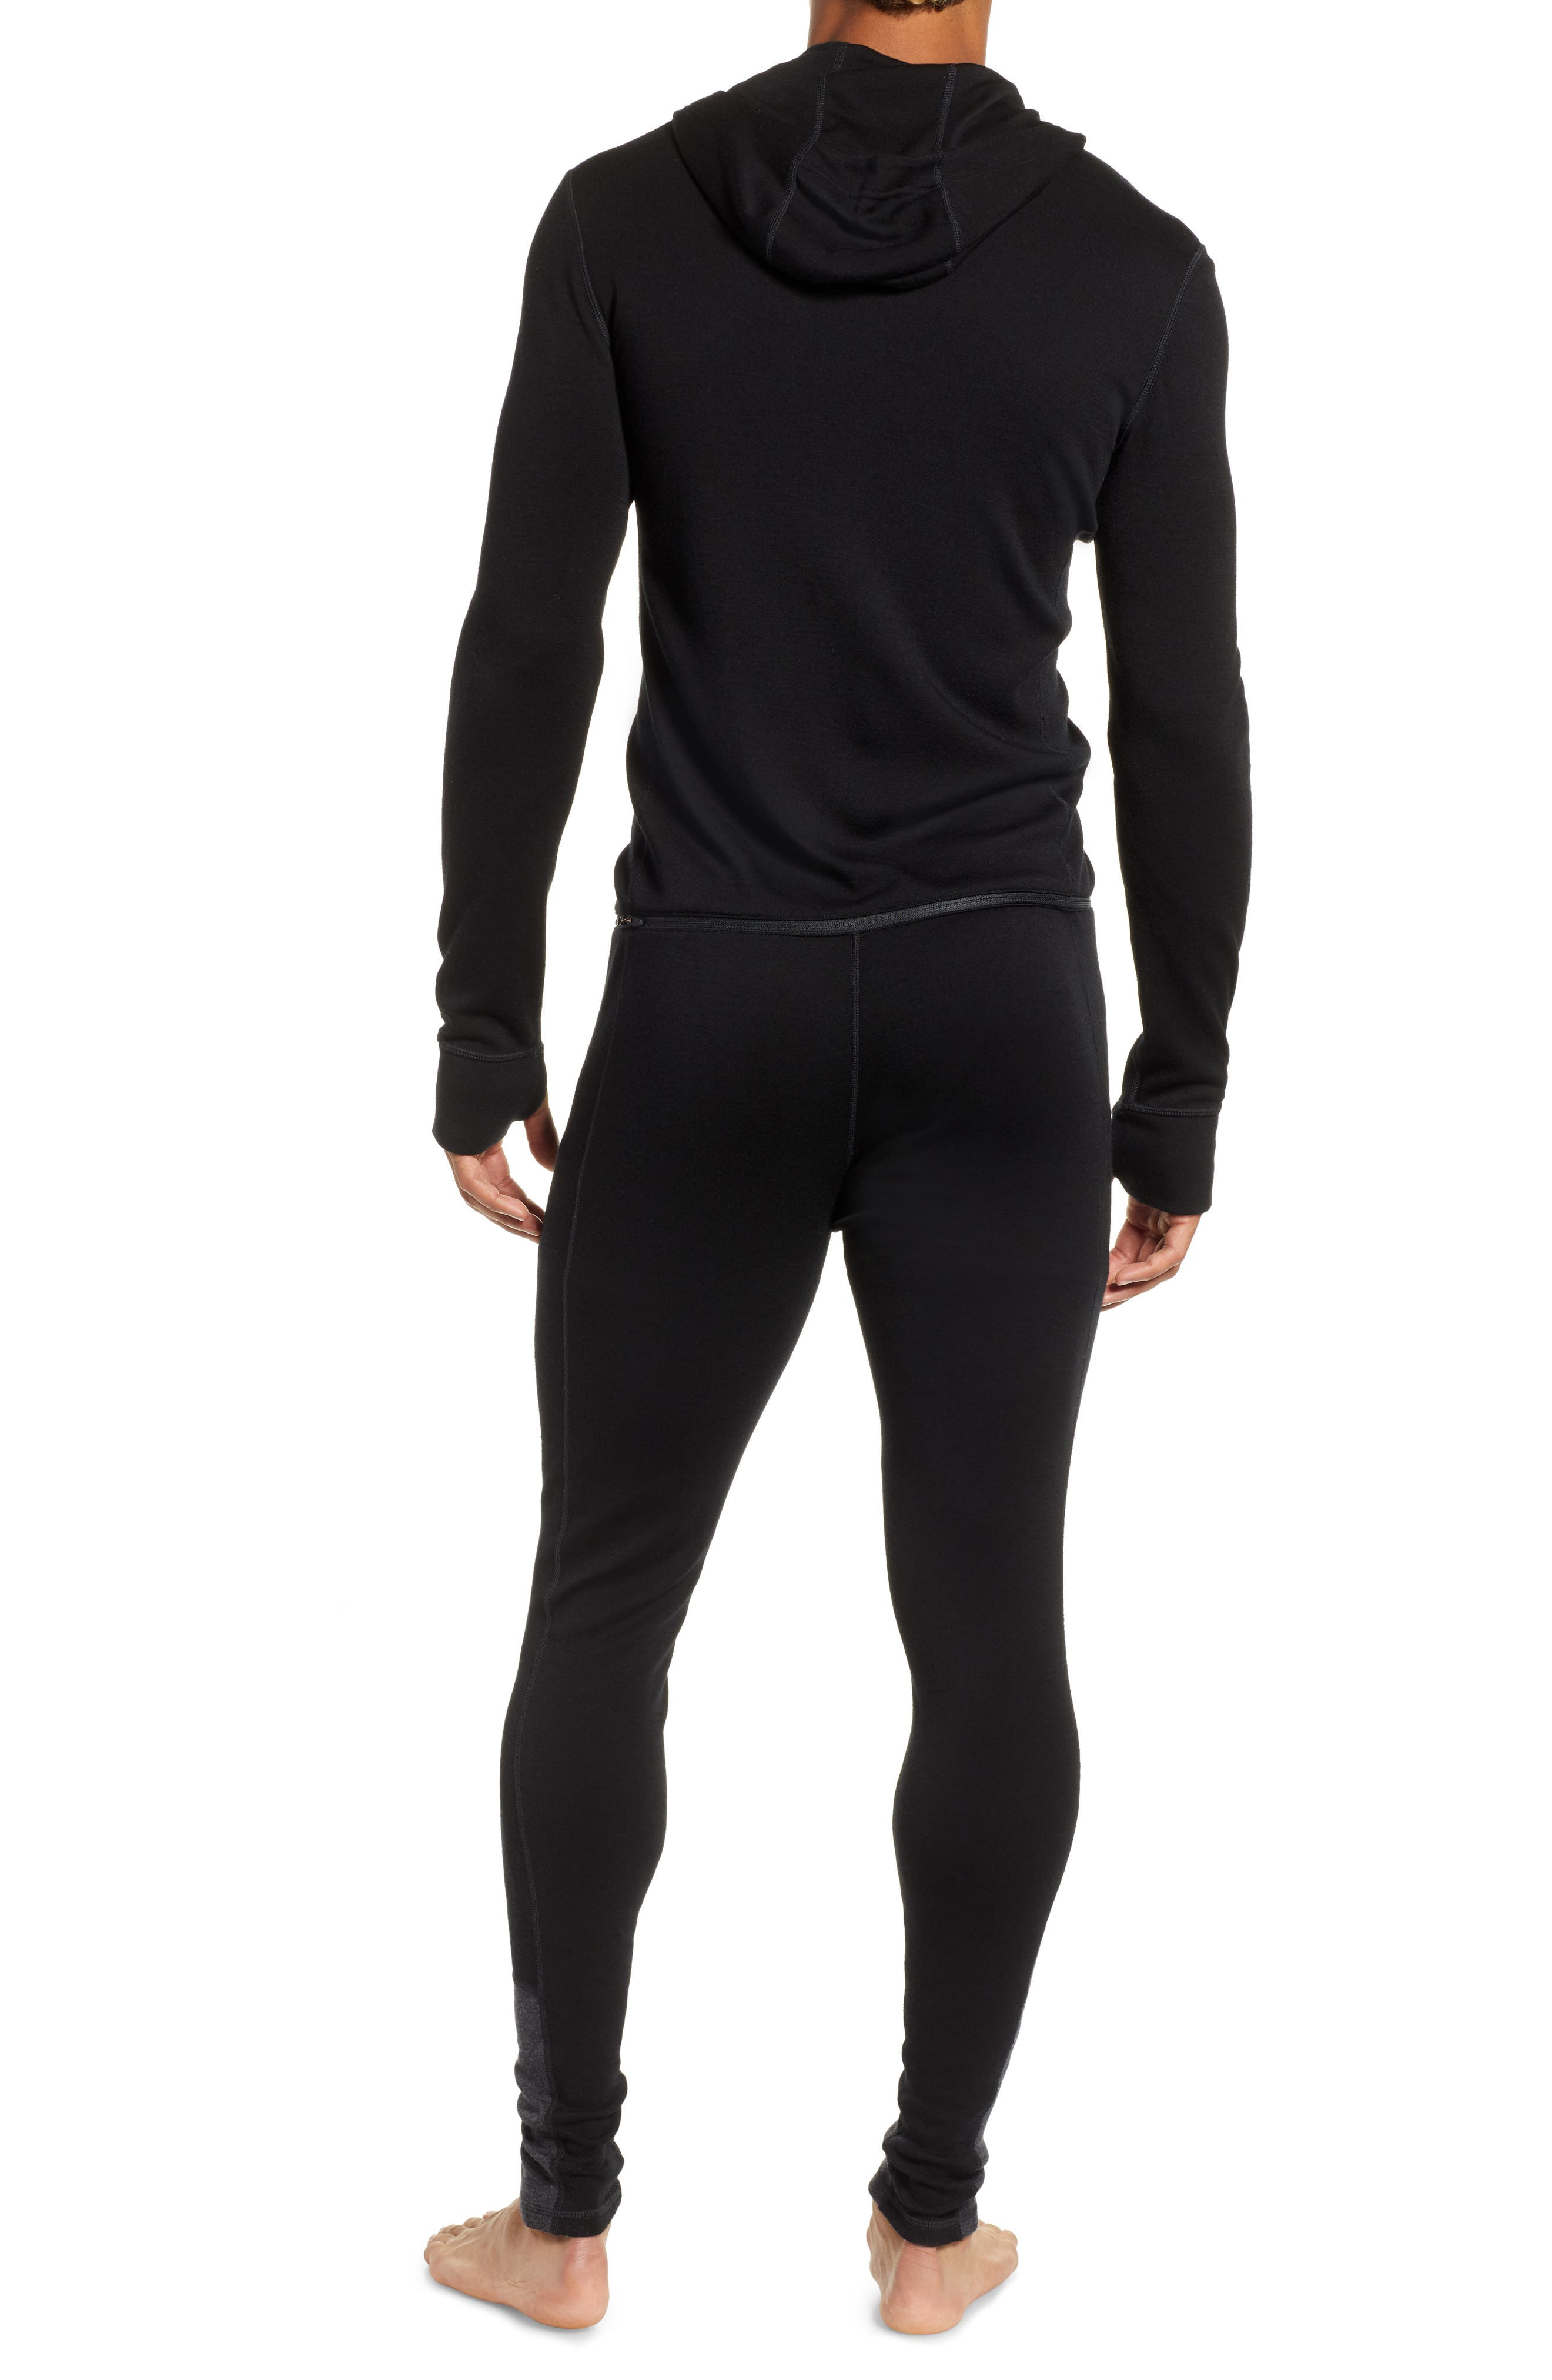 SMARTWOOL,                             Merino 250 Hooded One-Piece Base Layer,                             Alternate thumbnail 2, color,                             CHARCOAL/ BLACK